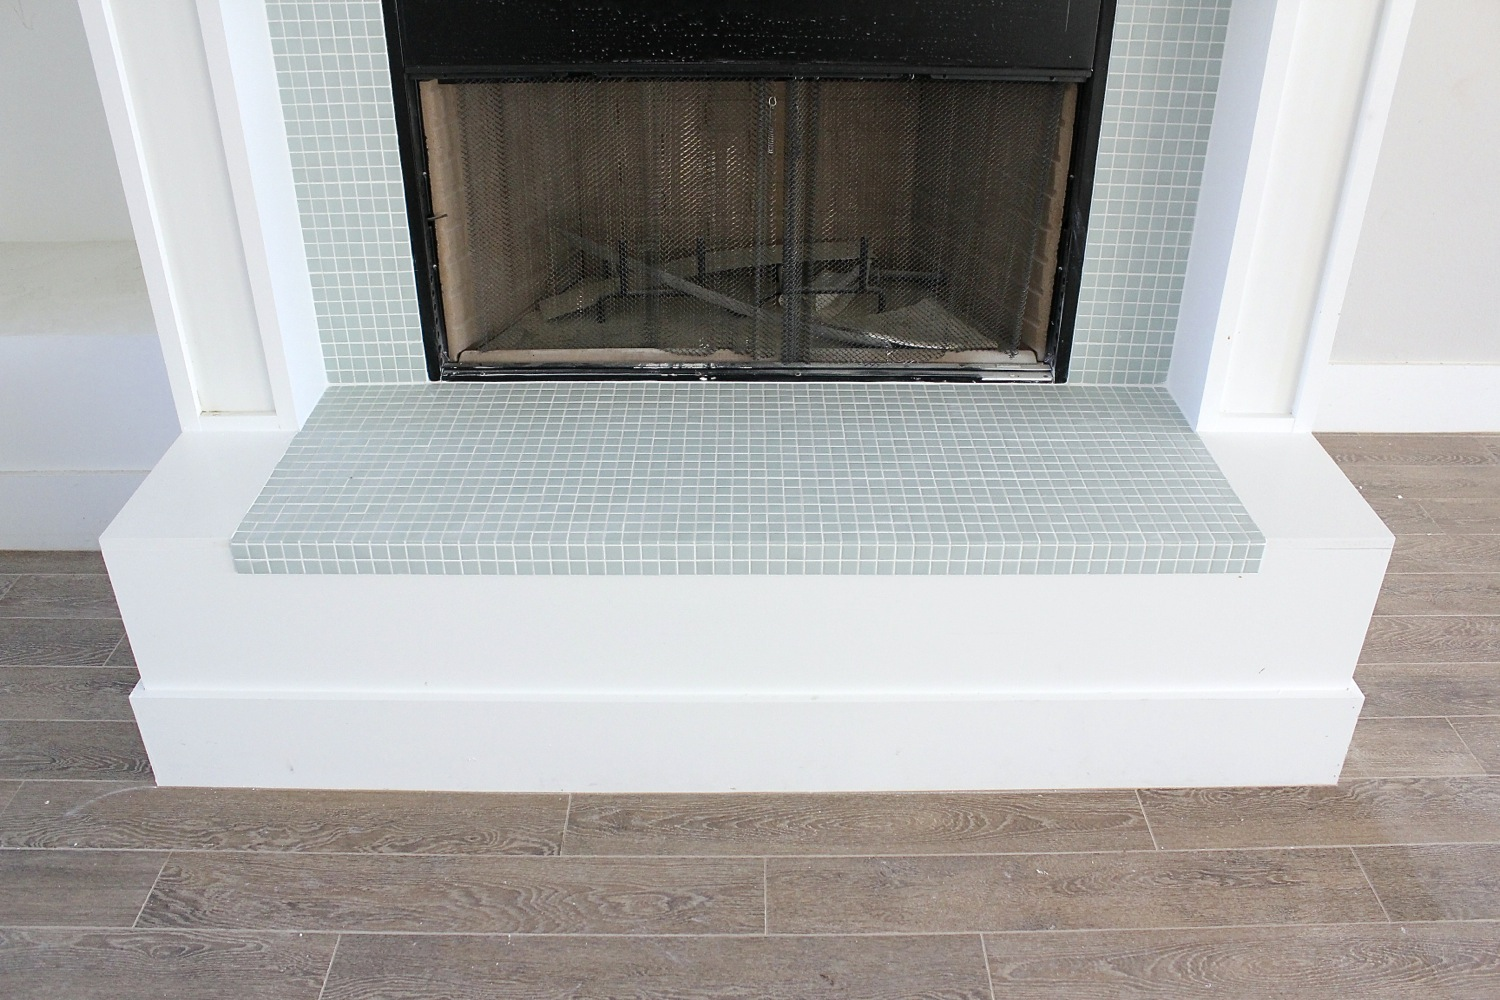 Building a new home: tile, flooring, countertops, and color – MADE ...